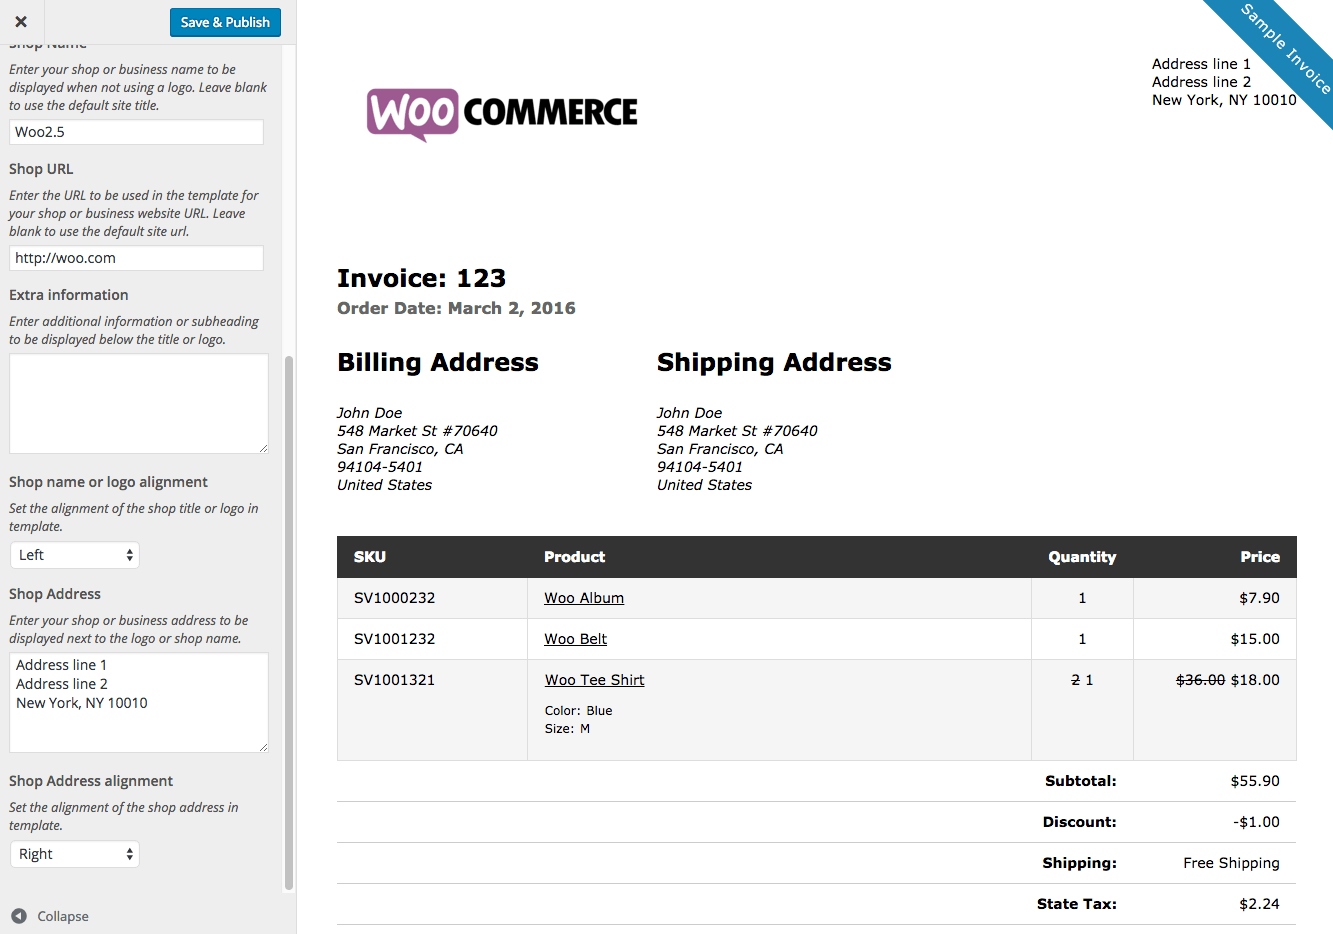 Howcanigettallerus  Scenic Woocommerce Print Invoices Amp Packing Lists  Woocommerce Docs With Gorgeous Woocommerce Print Invoices  Packing Lists Customizer With Lovely Child Care Payment Receipt Also Scanner Receipt In Addition Los Angeles Taxi Receipt And Cash Receipt Templates As Well As Doctor Receipt Template Additionally Labor Receipt Template From Docswoocommercecom With Howcanigettallerus  Gorgeous Woocommerce Print Invoices Amp Packing Lists  Woocommerce Docs With Lovely Woocommerce Print Invoices  Packing Lists Customizer And Scenic Child Care Payment Receipt Also Scanner Receipt In Addition Los Angeles Taxi Receipt From Docswoocommercecom